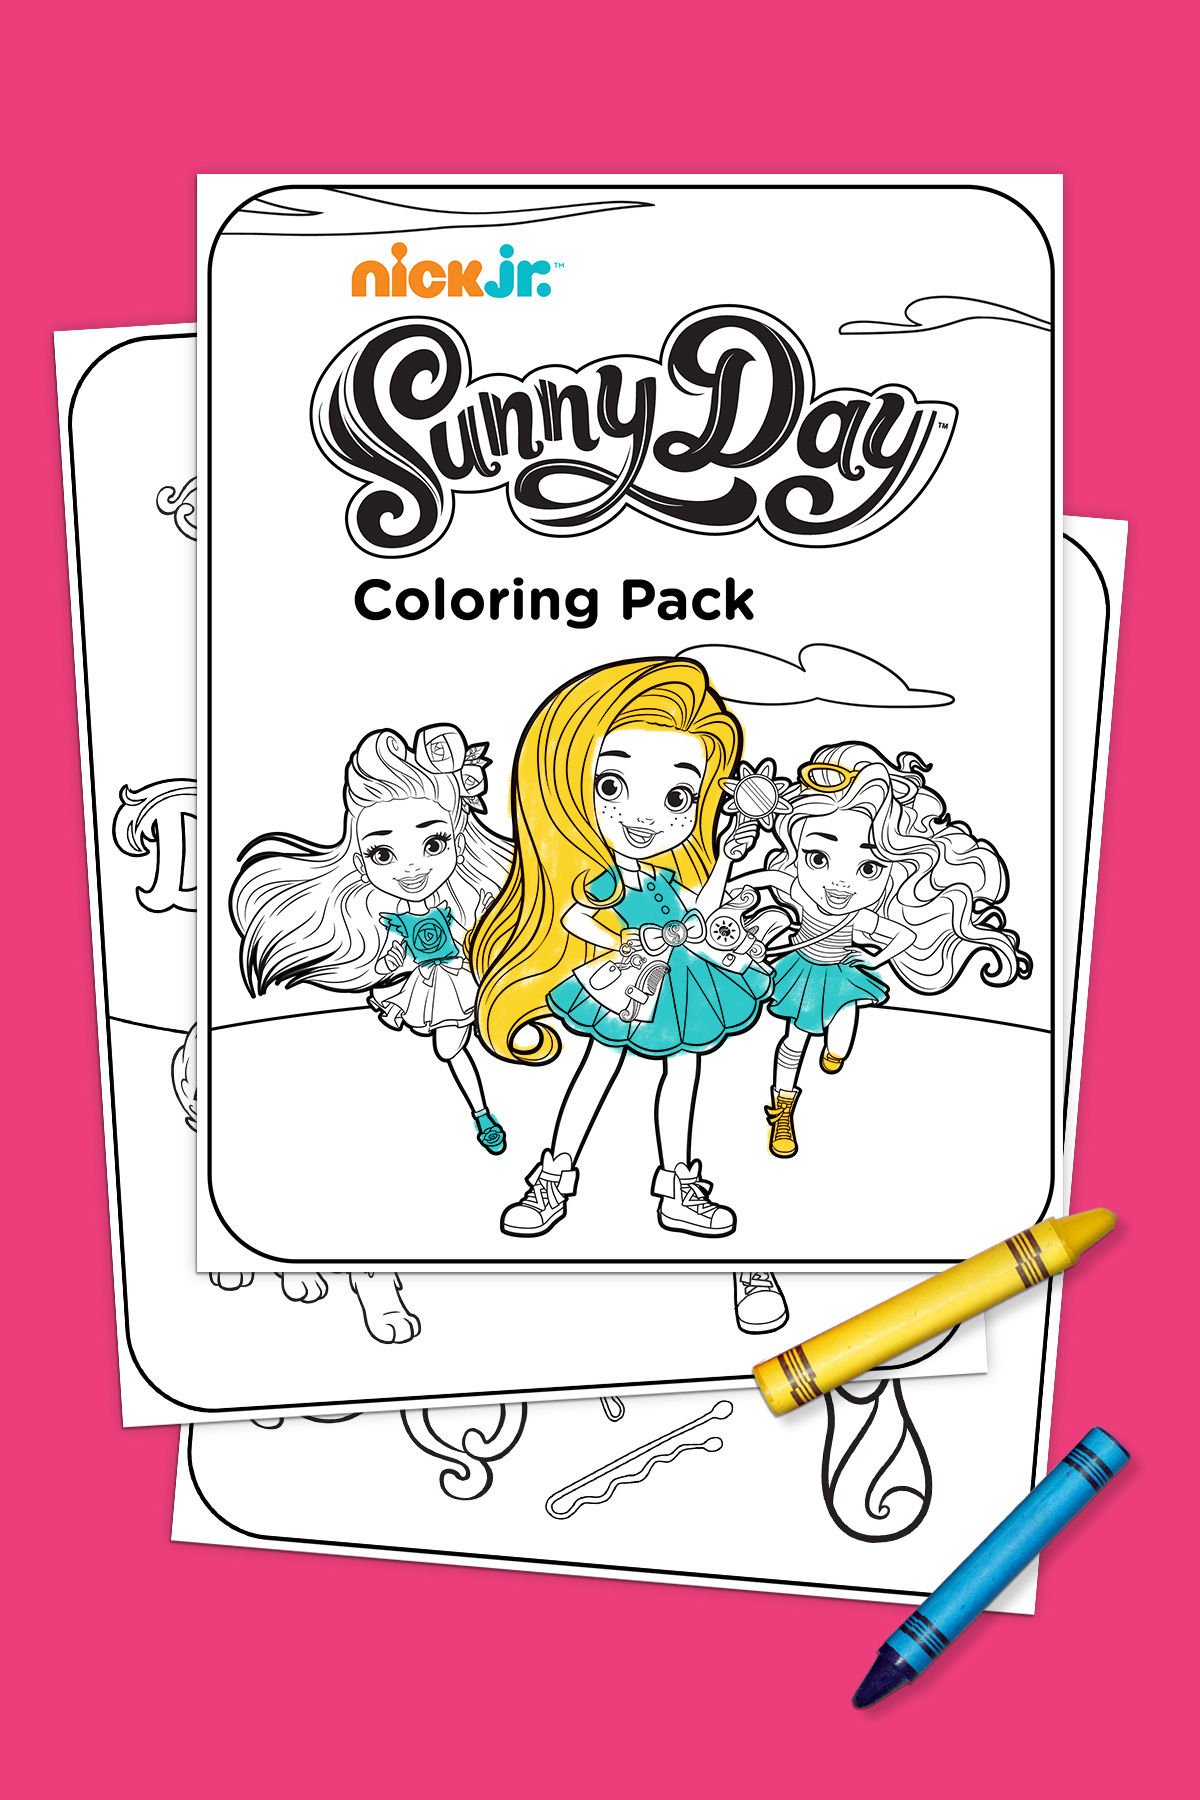 Sunny Day Coloring Pack Preschool Printables